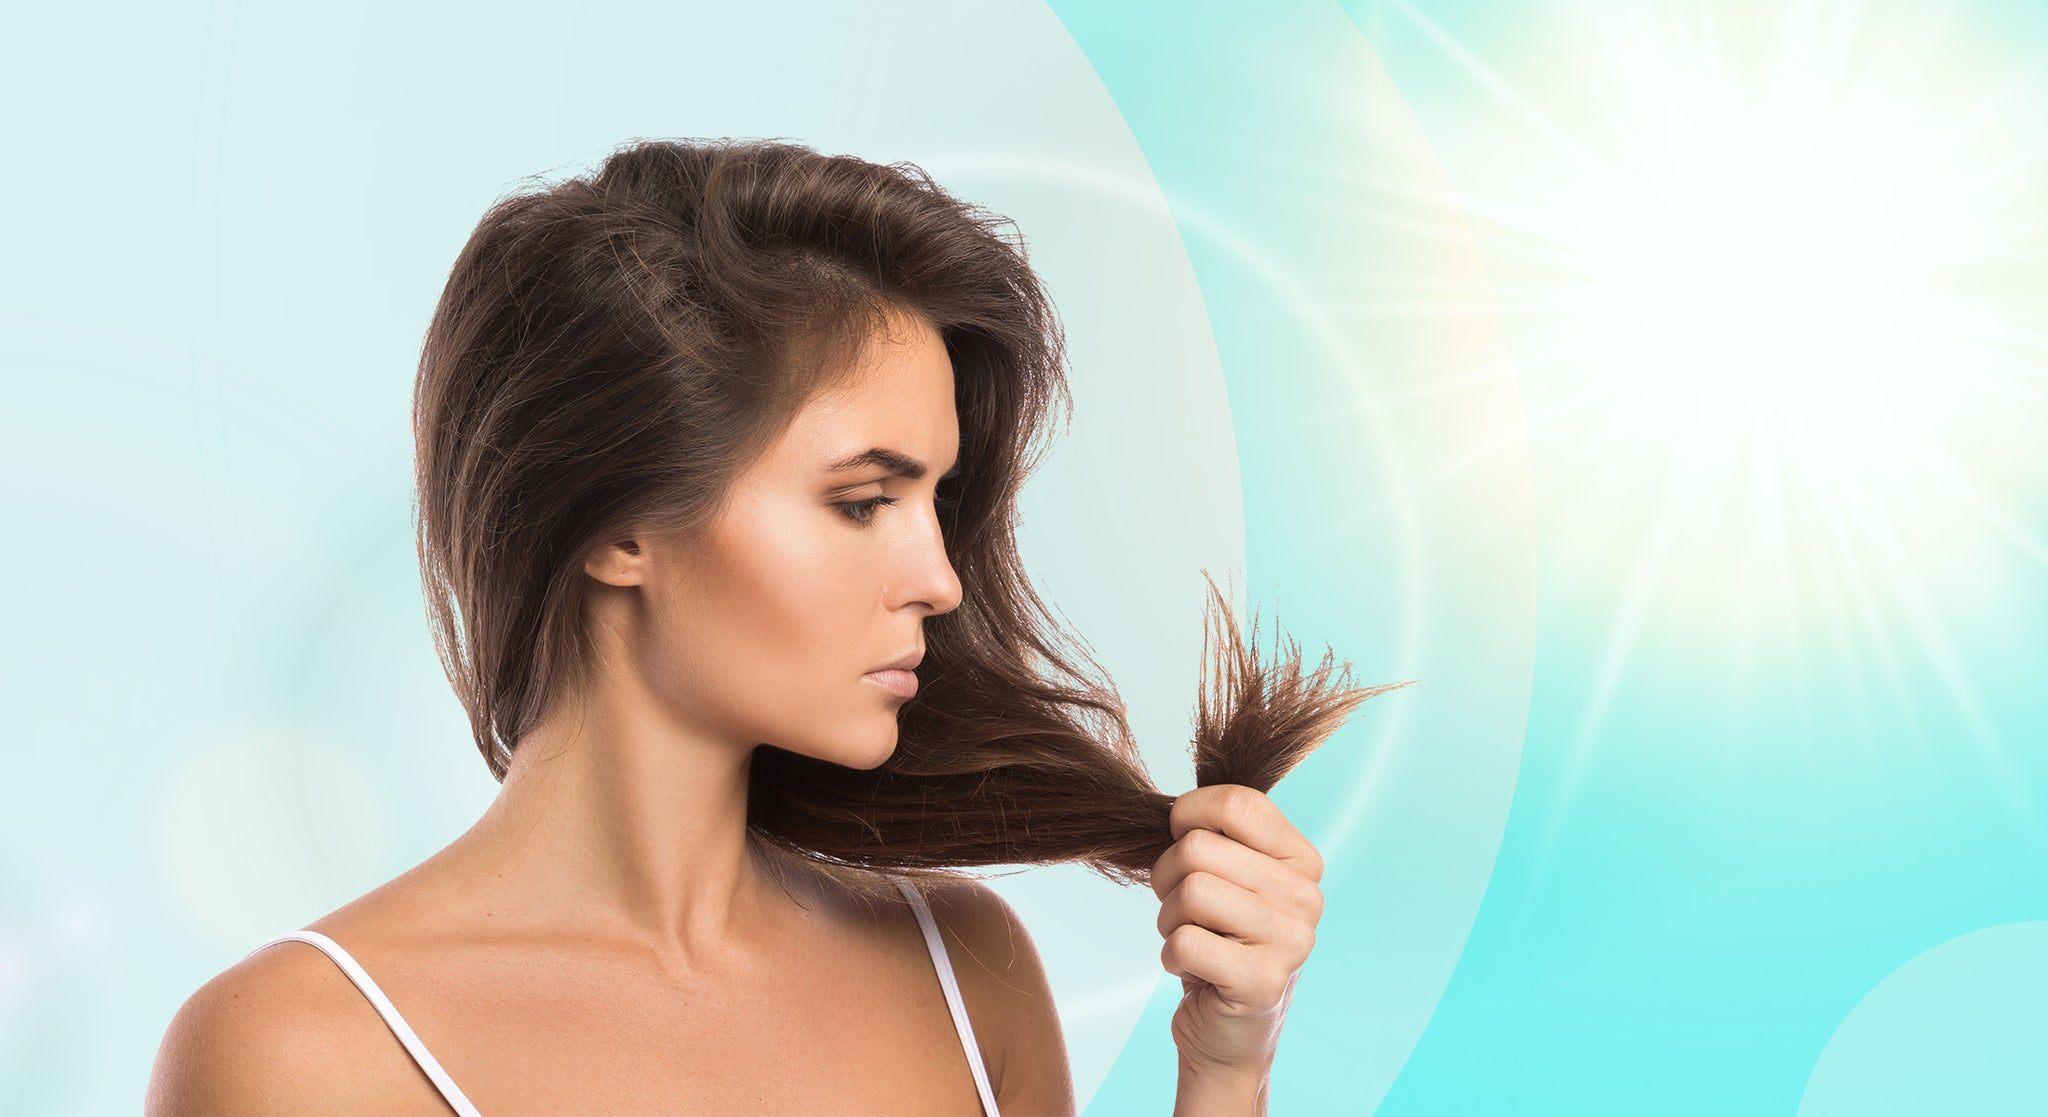 Hair Damage by Sun, Causes, Signs, Prevention, and Treatment.